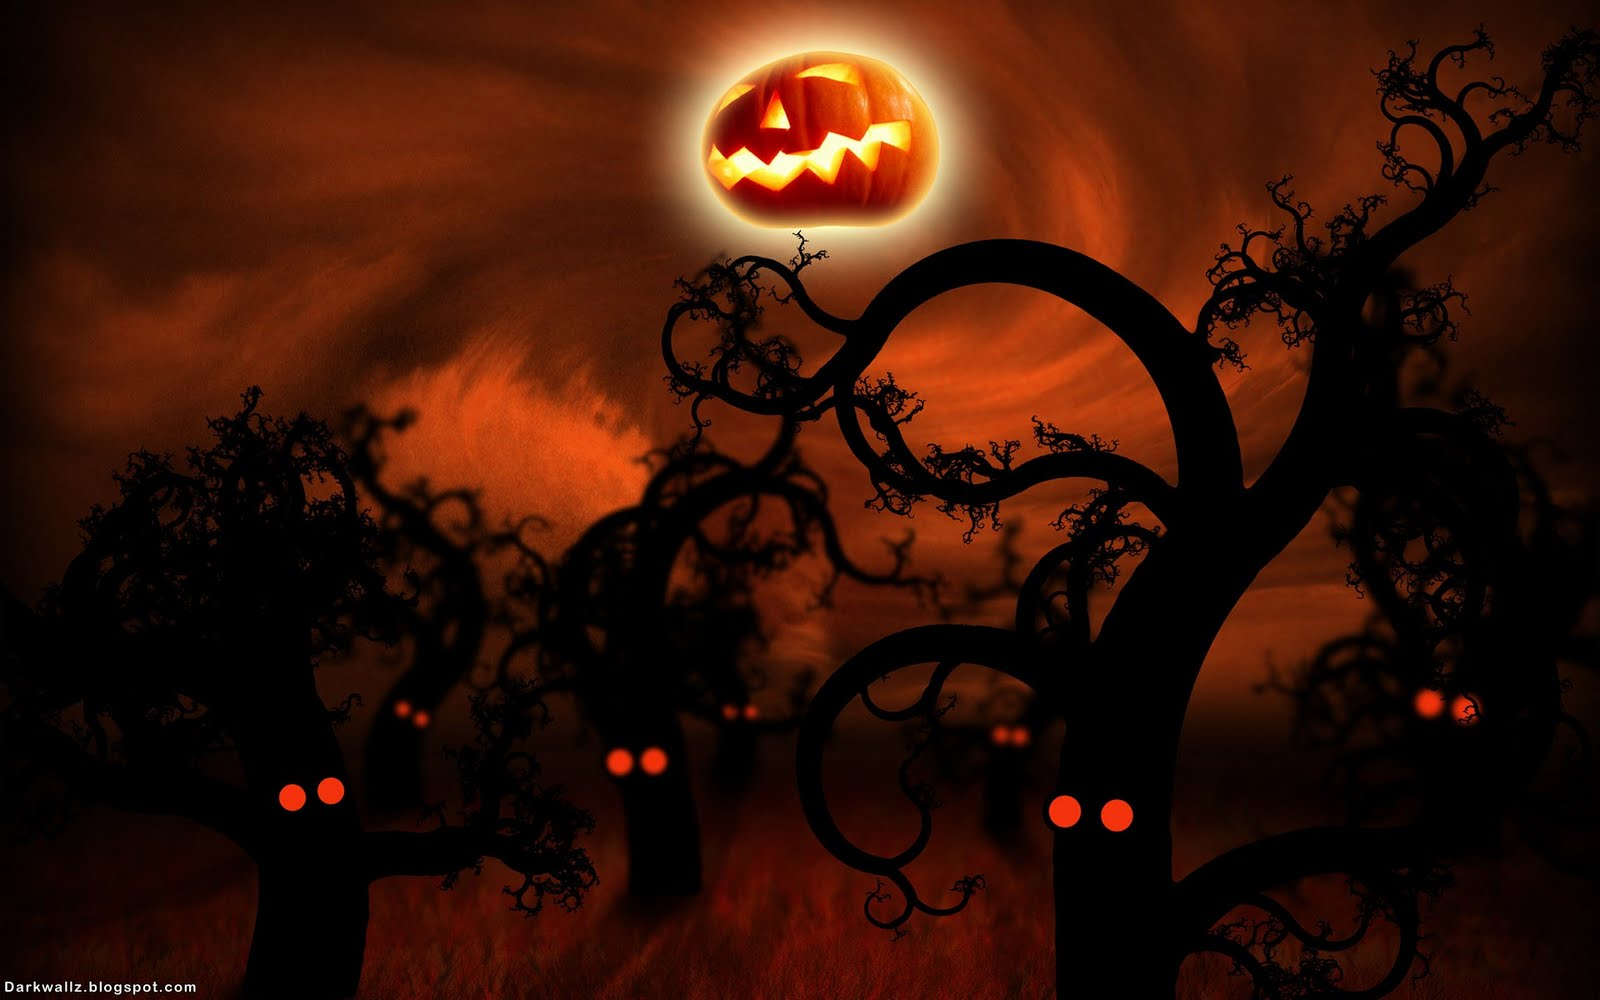 Halloween Wallpapers 15 | Dark Wallpaper Download